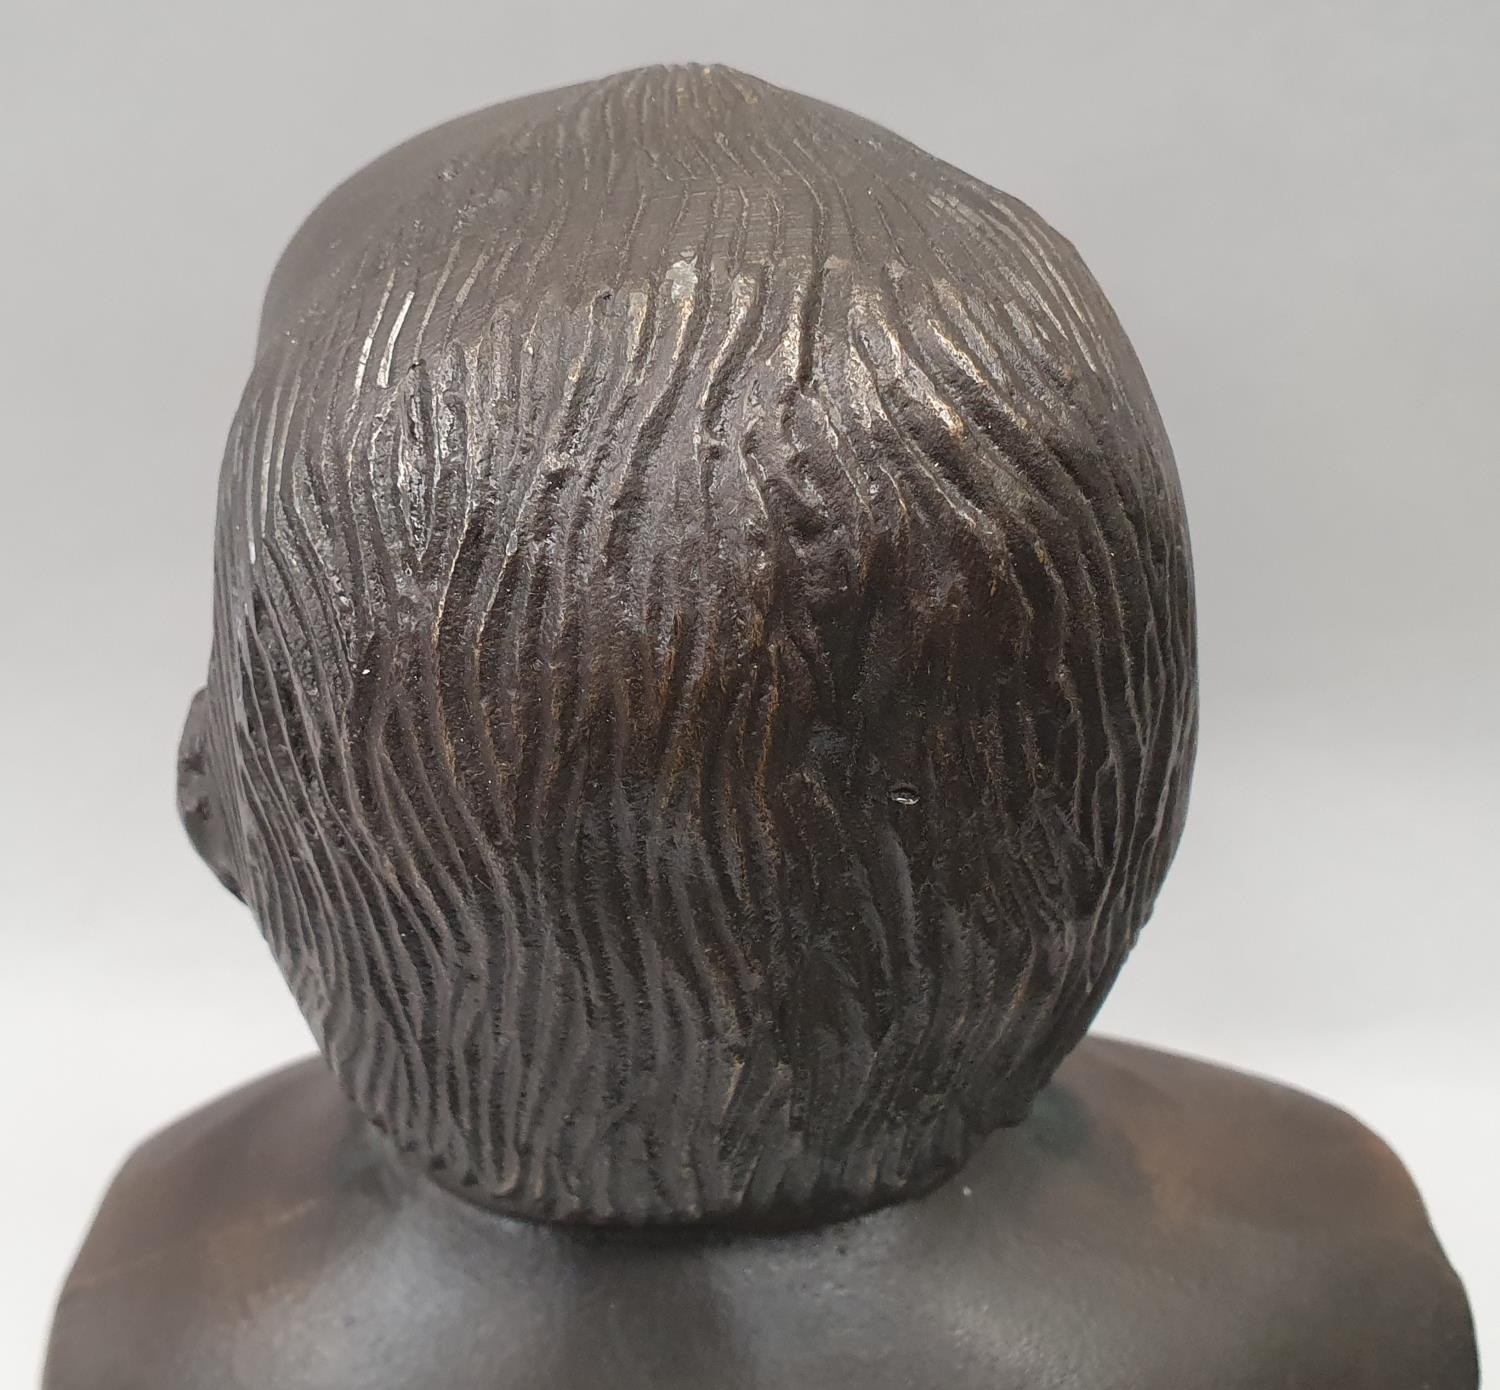 A cast metal bust of Winston Churchill on metal base 33cm tall. - Image 4 of 6